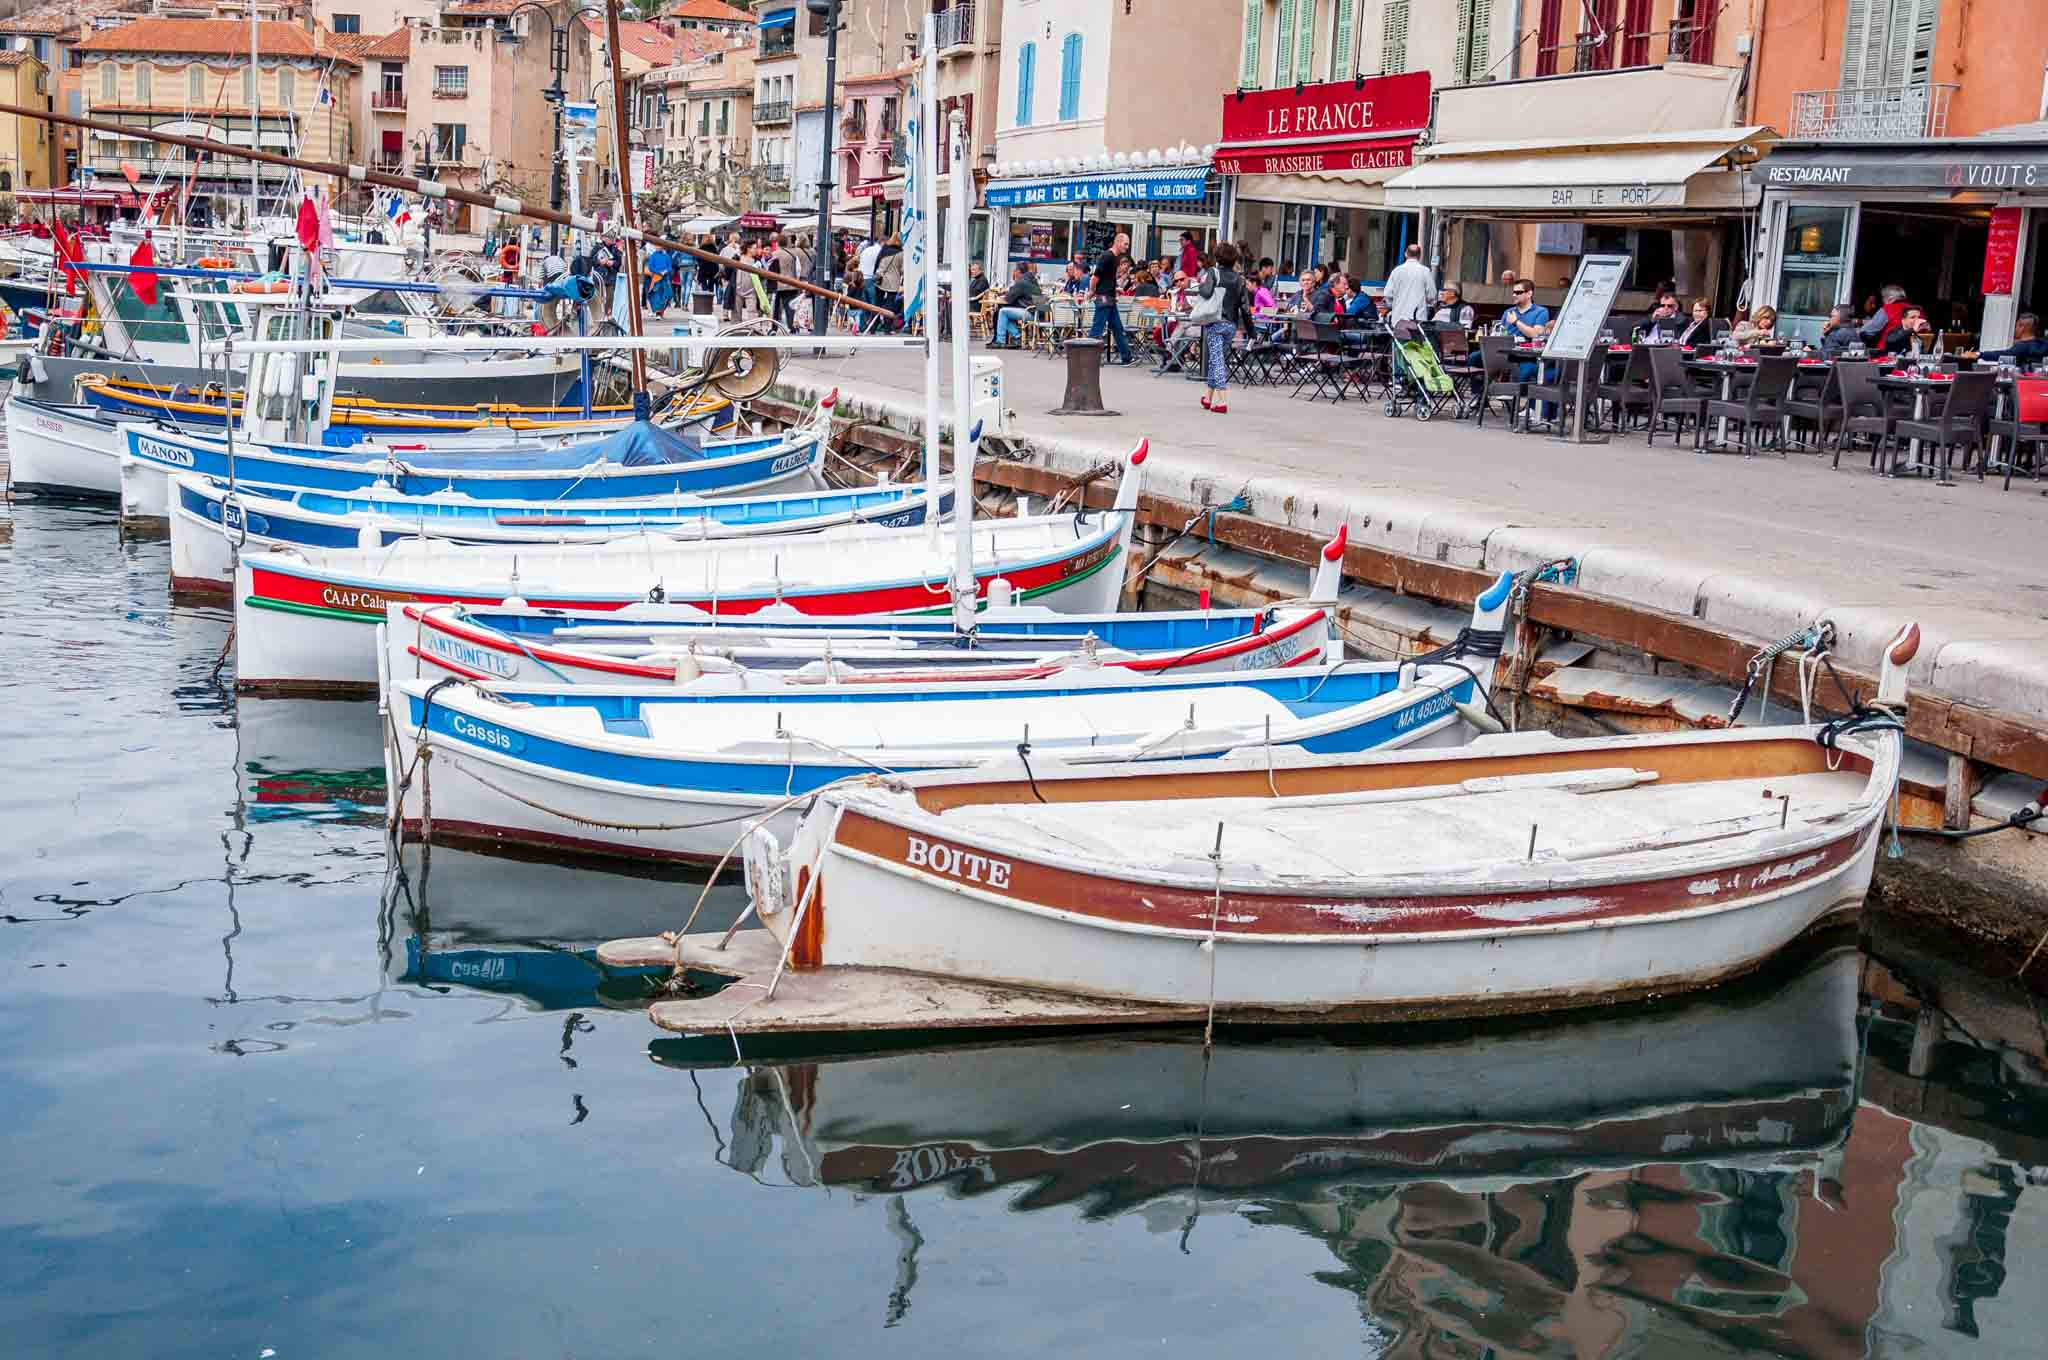 Boats and seaside restaurants in Cassis, a lovely stop on a 10-day South of France itinerary